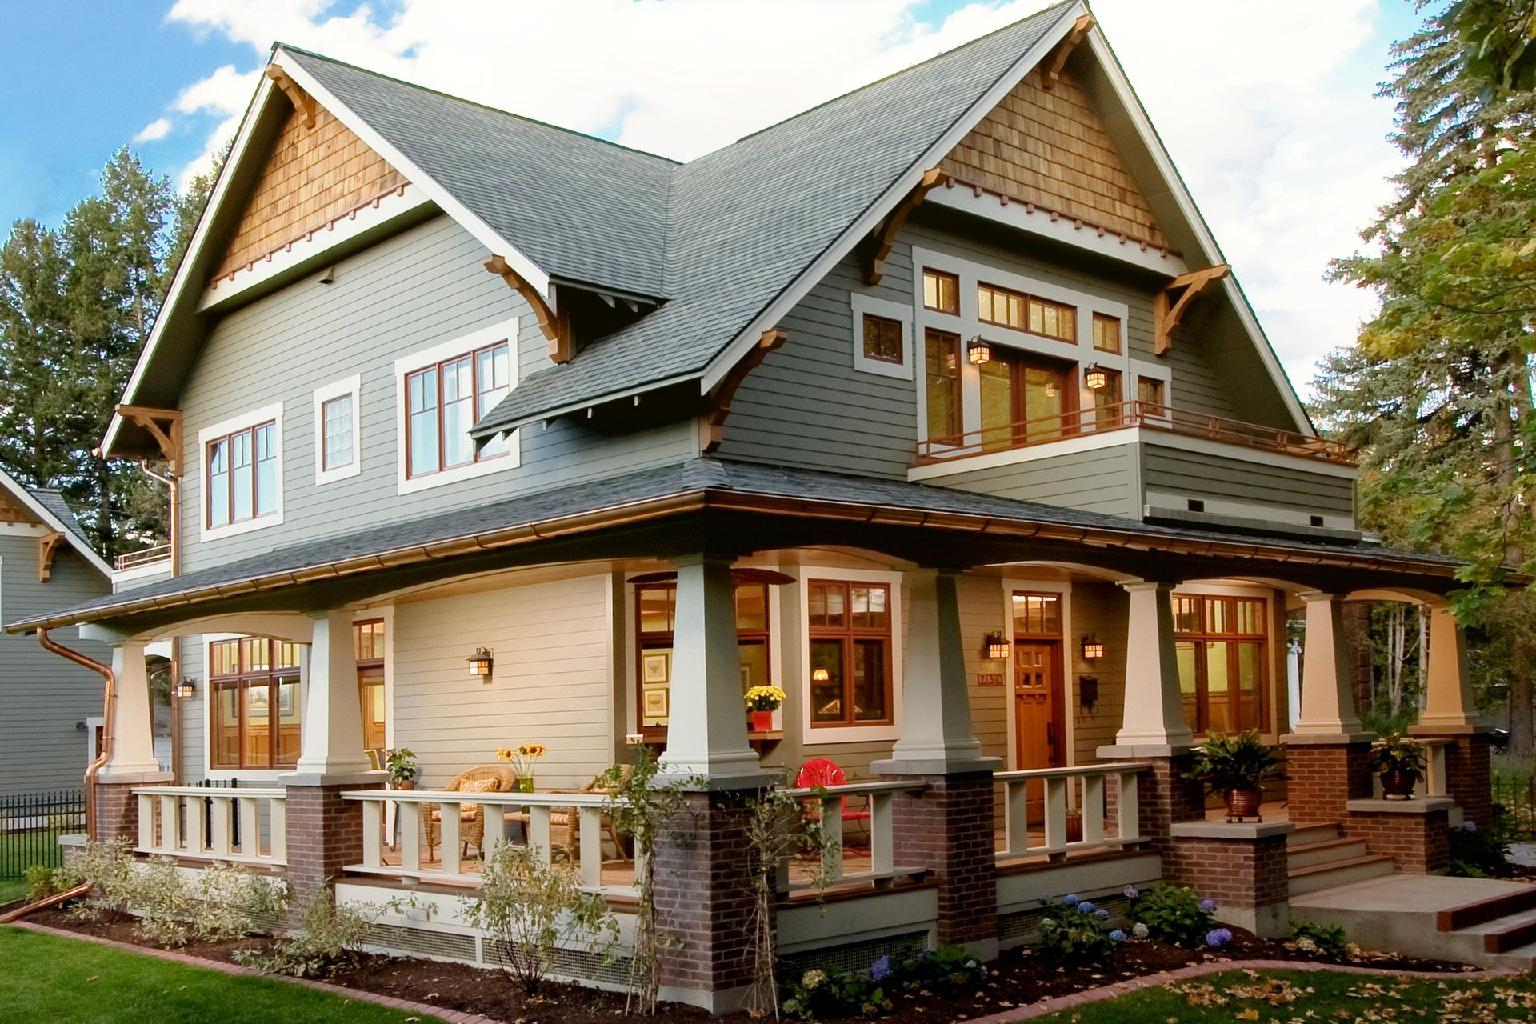 21 craftsman style house ideas with bedroom and kitchen for Craftsman home